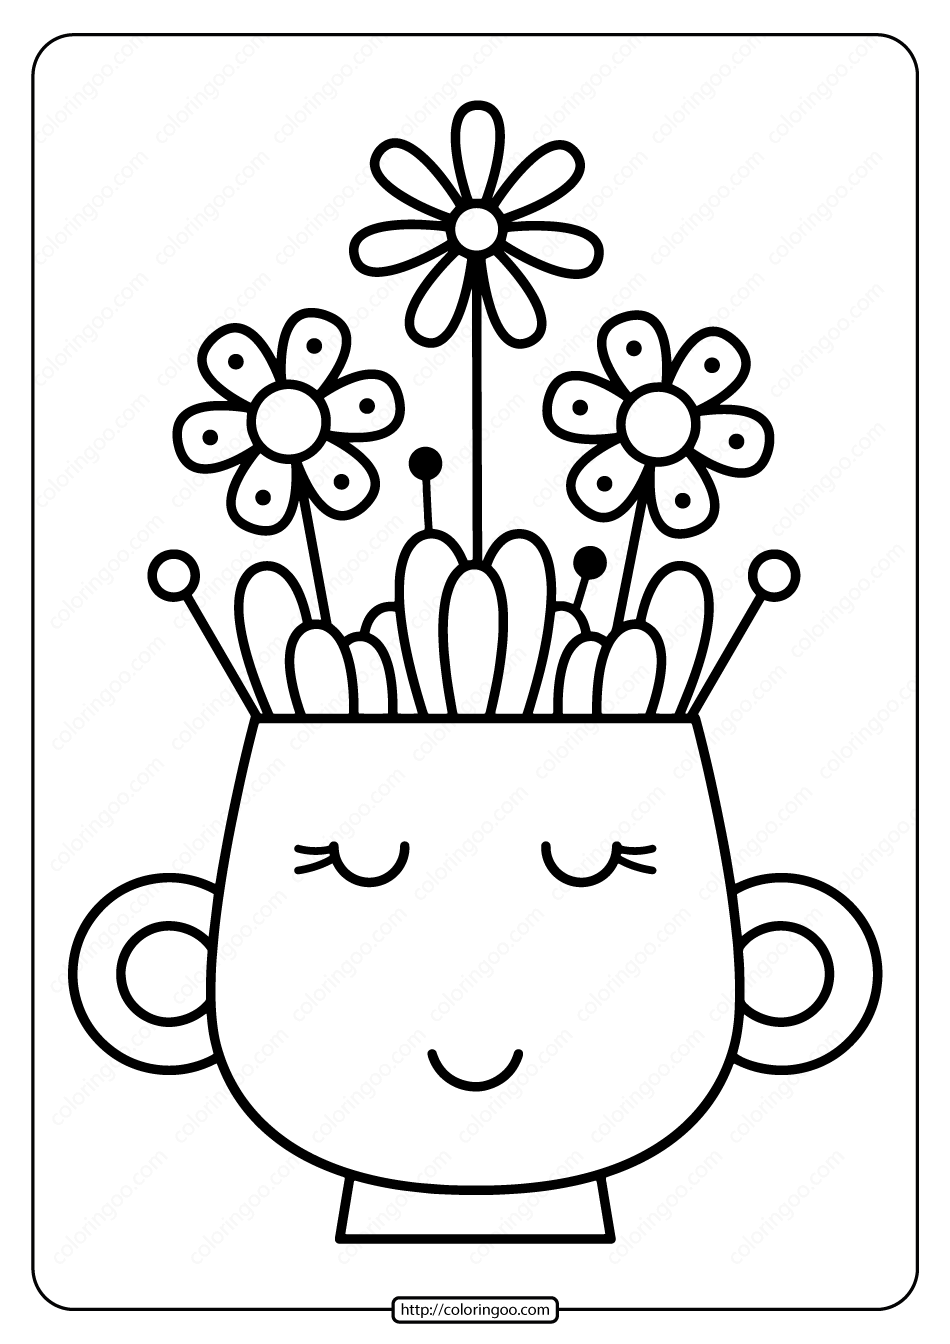 Printable Vase with Spring Flowers Coloring Page